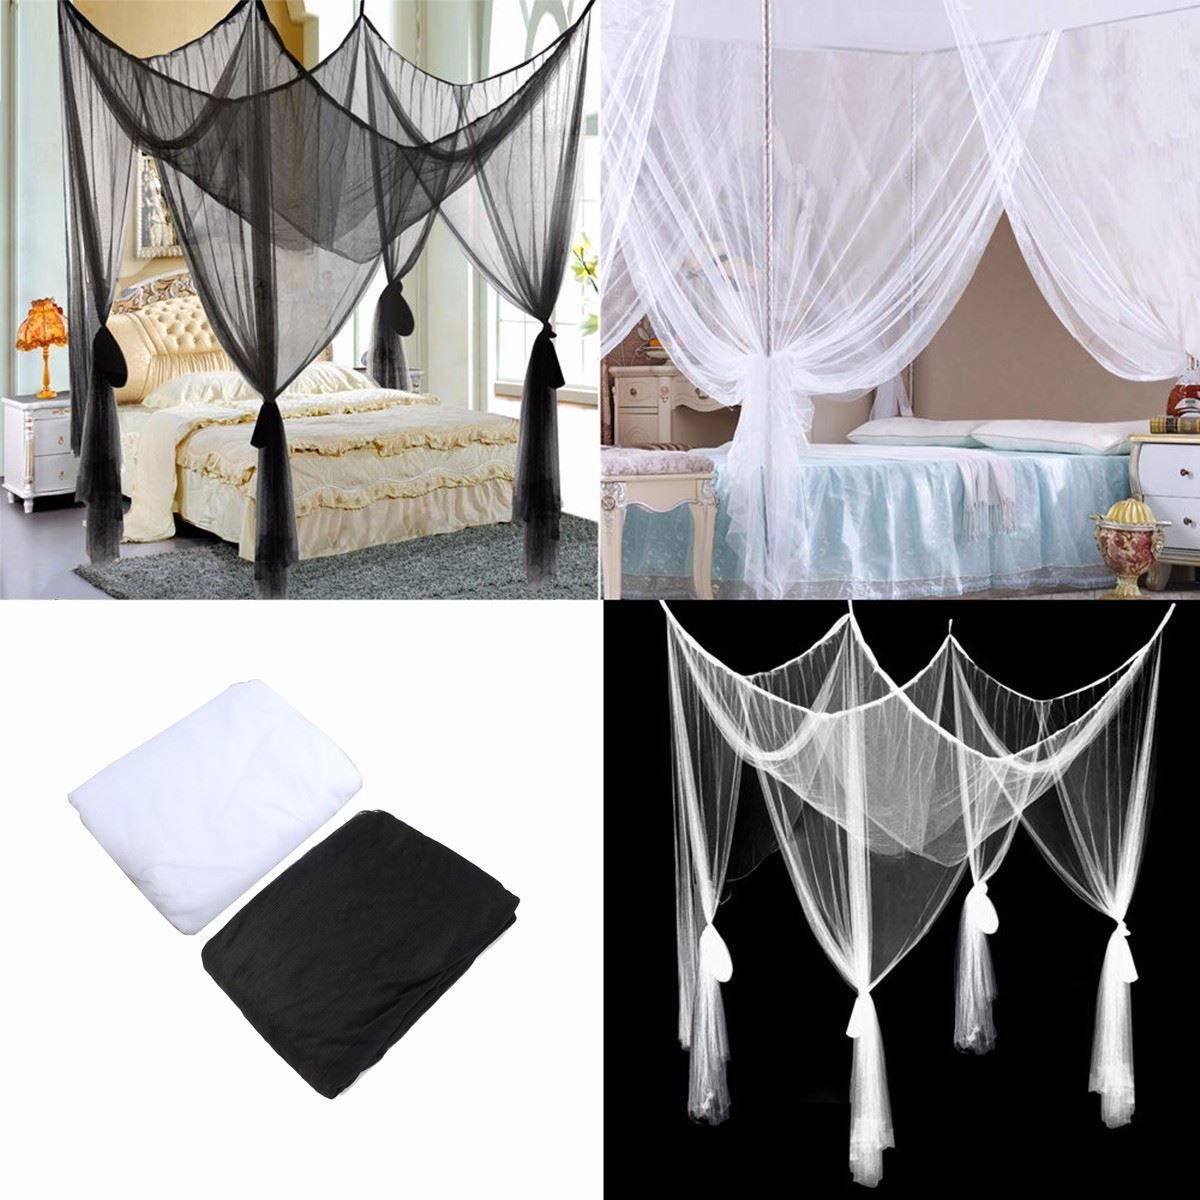 4 post bed canopy bedfour poster bed canopy fascinating 4 poster black mosquito net 4 post poster bed canopy four corner mosquito black mosquito net 4 post poster bed canopy four corner mosquito